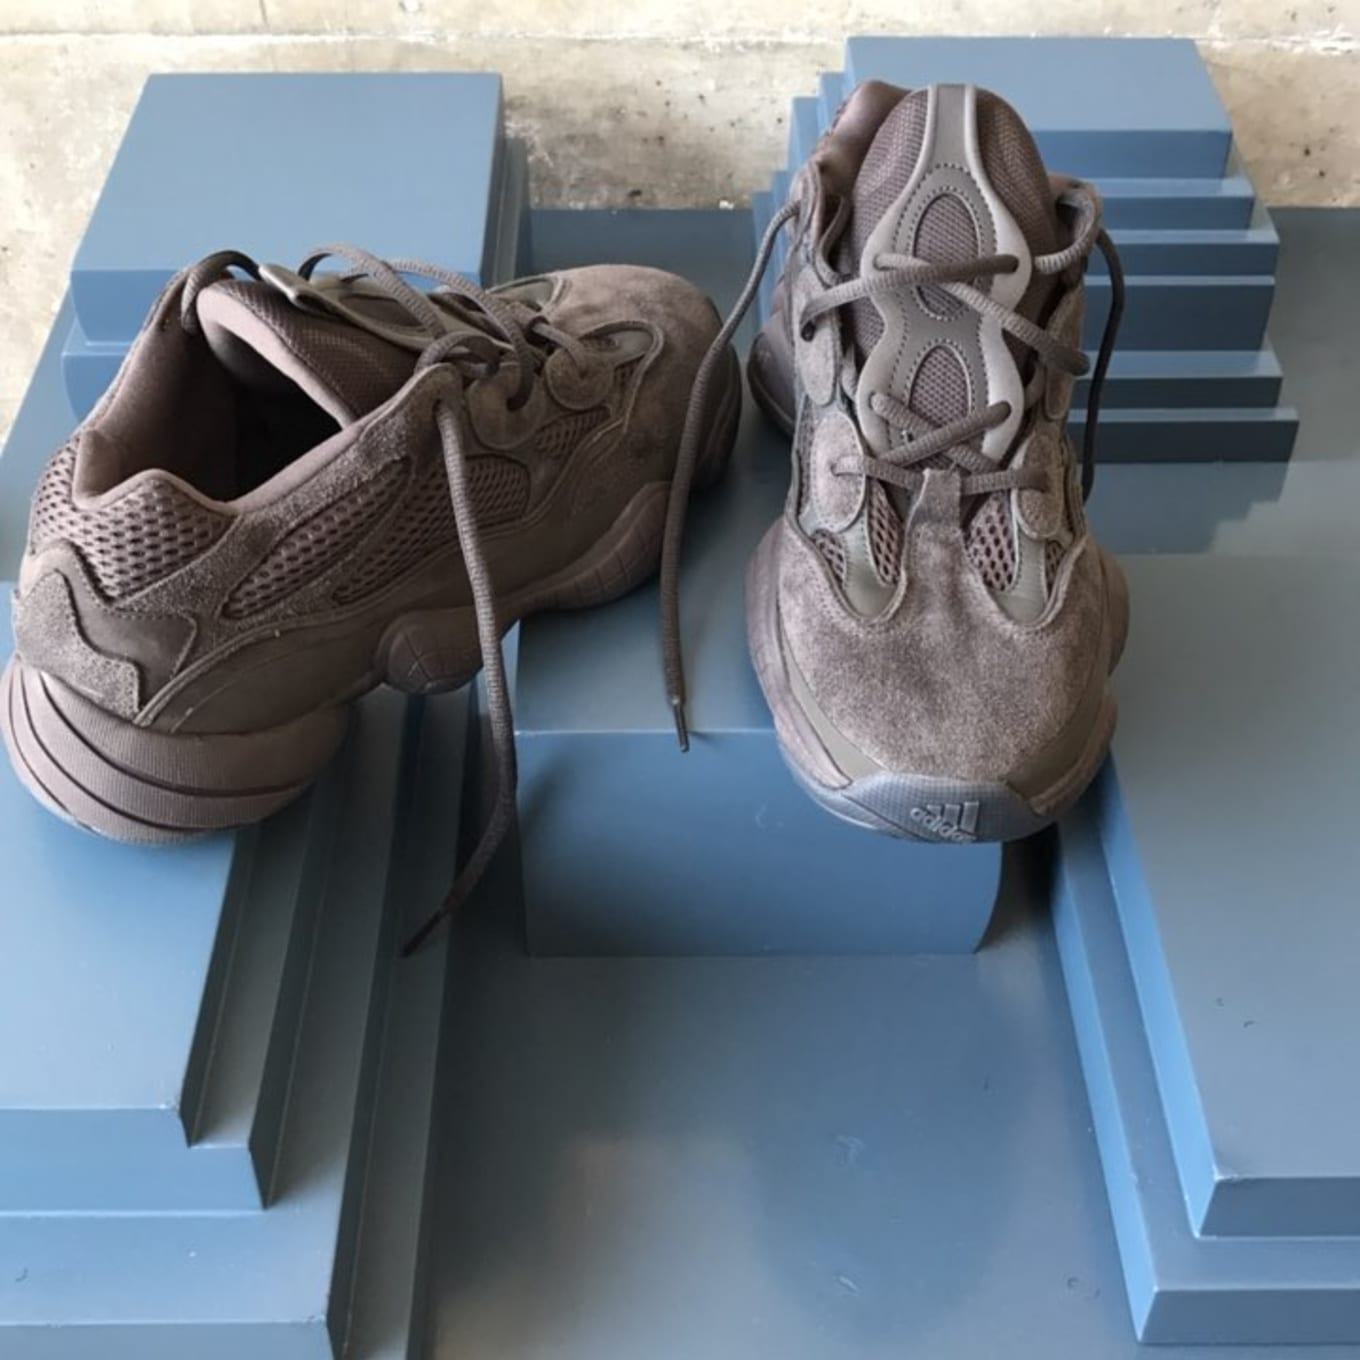 8d3d11a7cc09c New Yeezy Runners in Grey Suede Surface